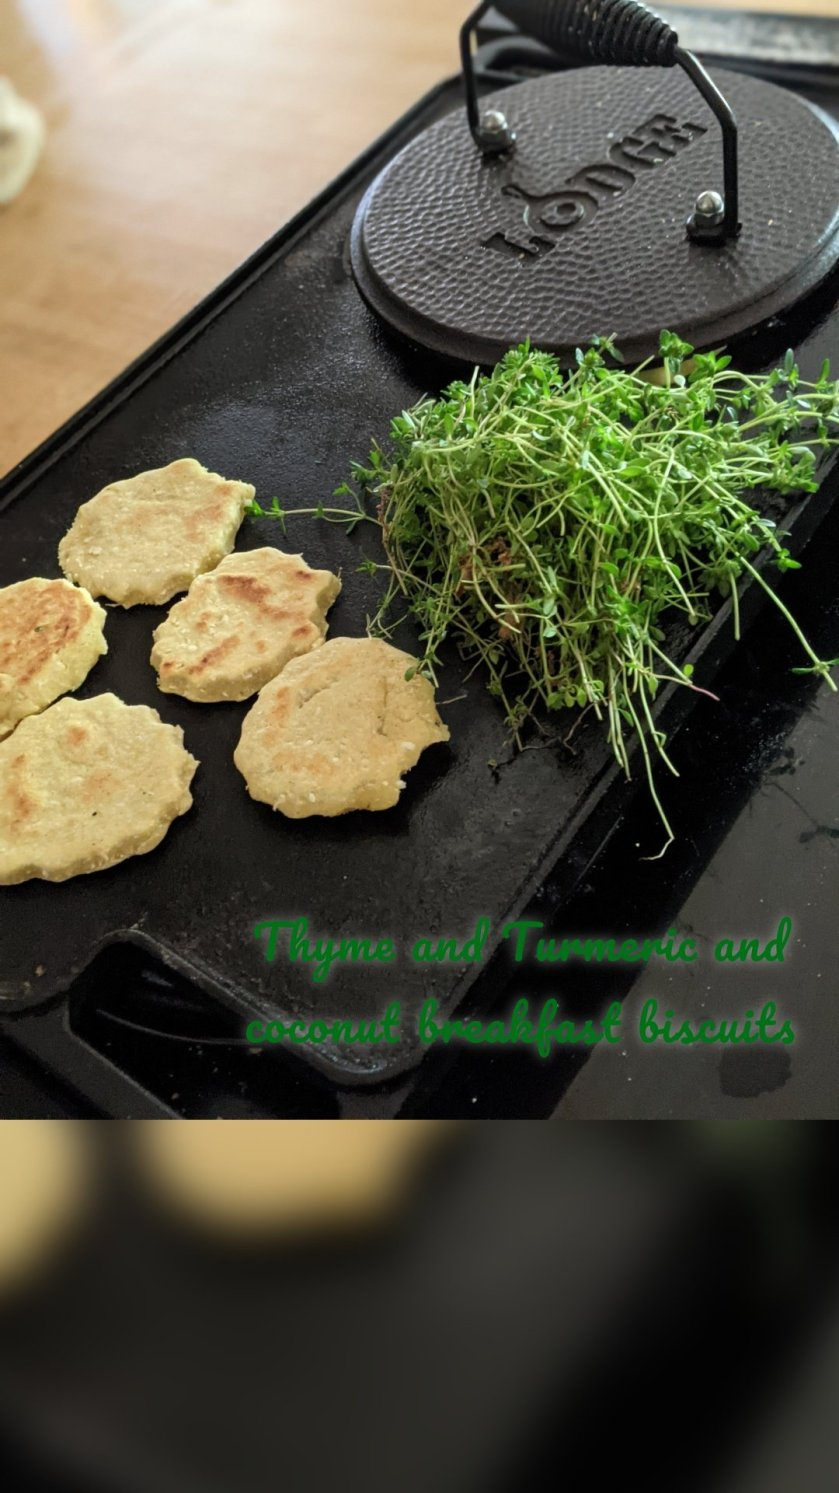 Thyme and Turmeric and coconut breakfast biscuits